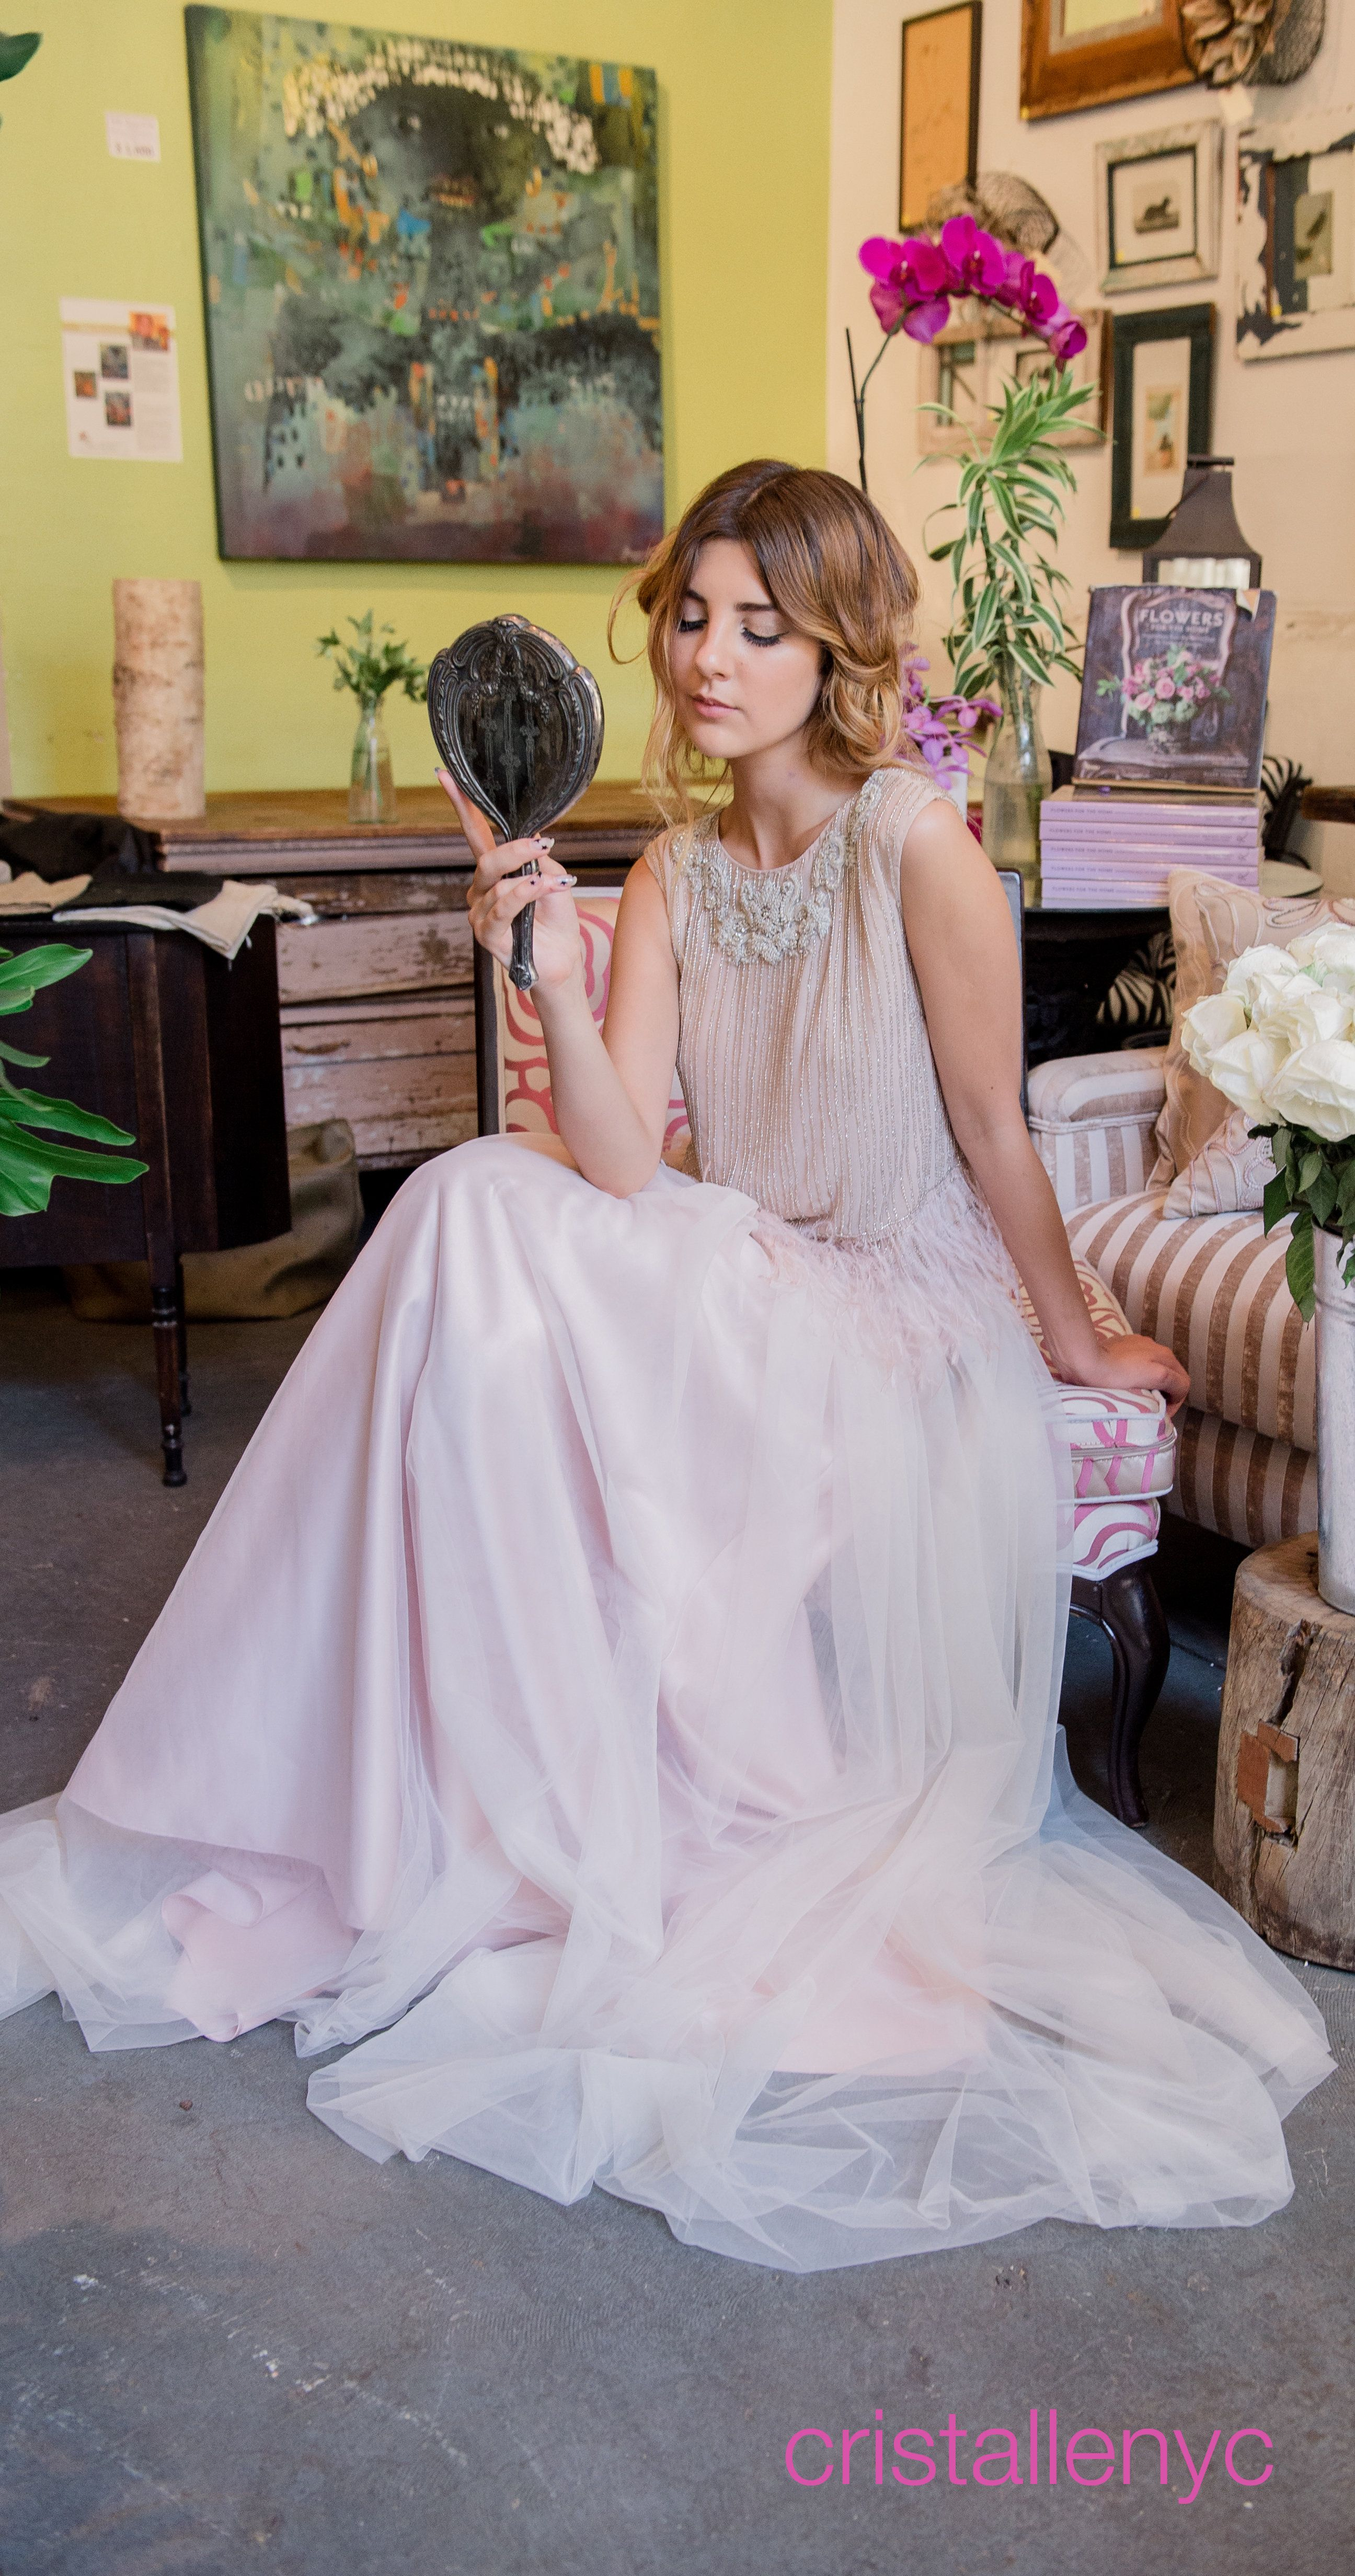 Great gatsby inspired wedding dresses  Cristalle feathered top over tulle skirt  cristalle nyc brides